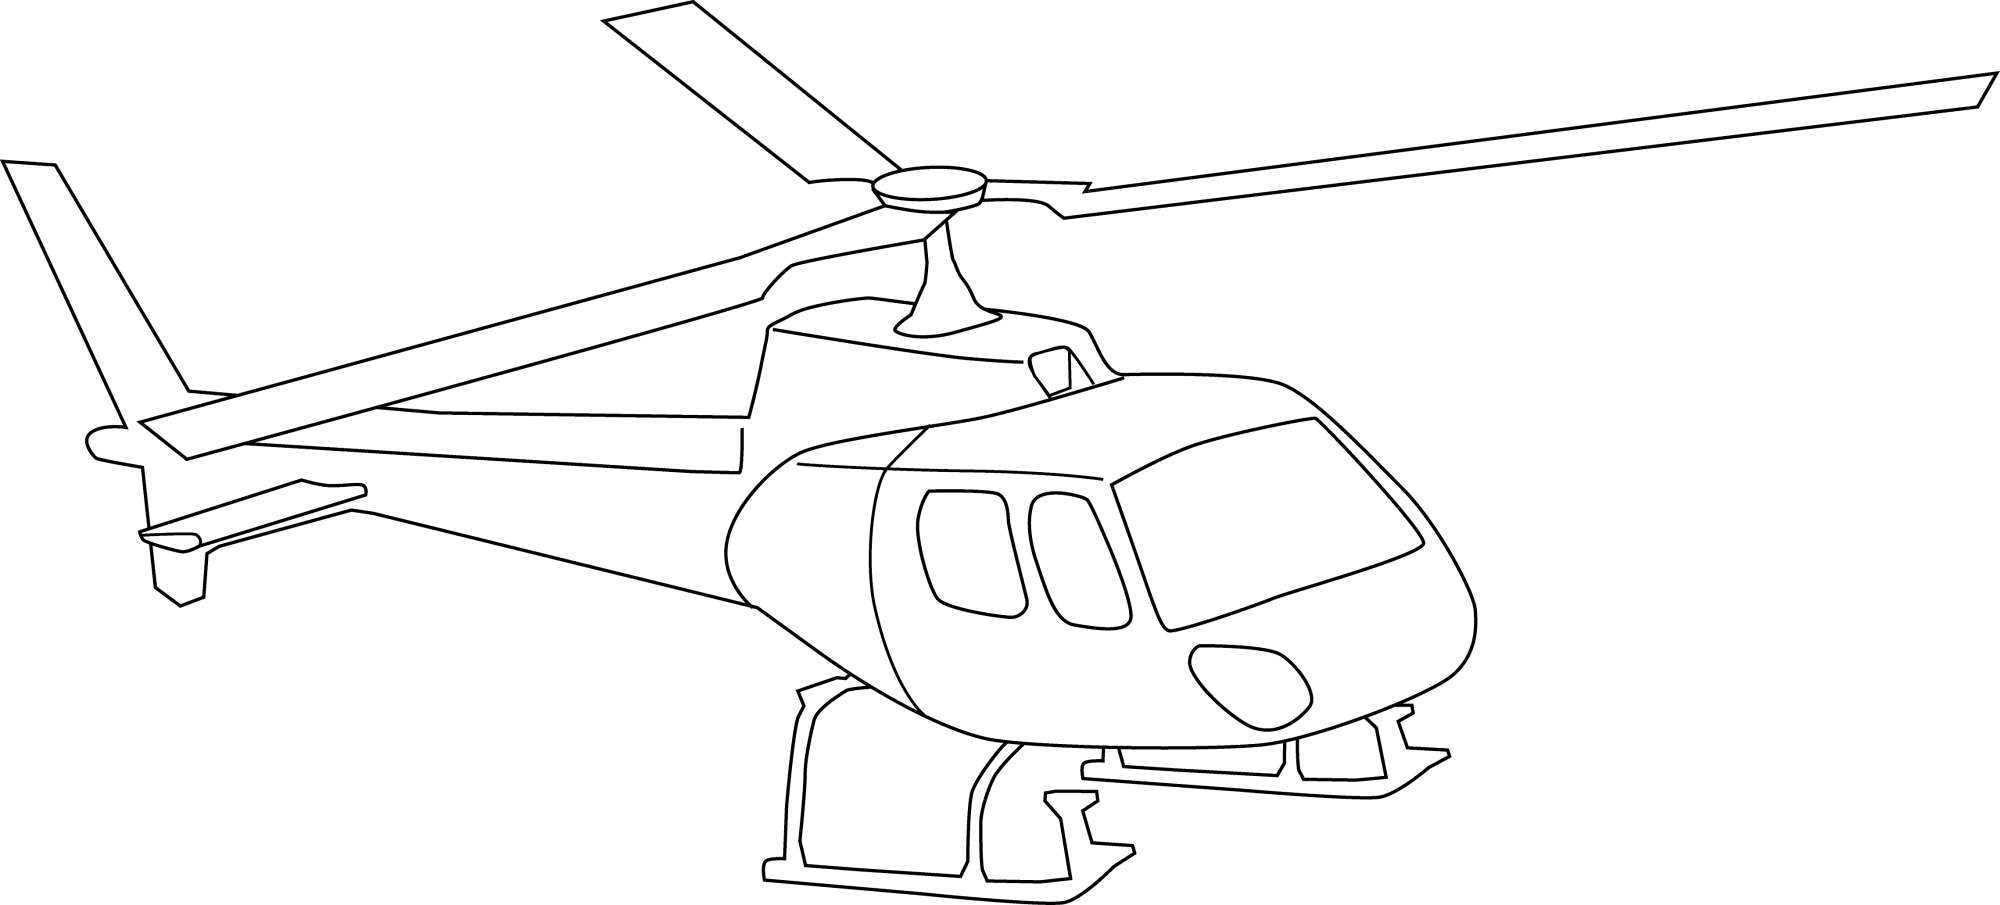 hight resolution of helicopter index